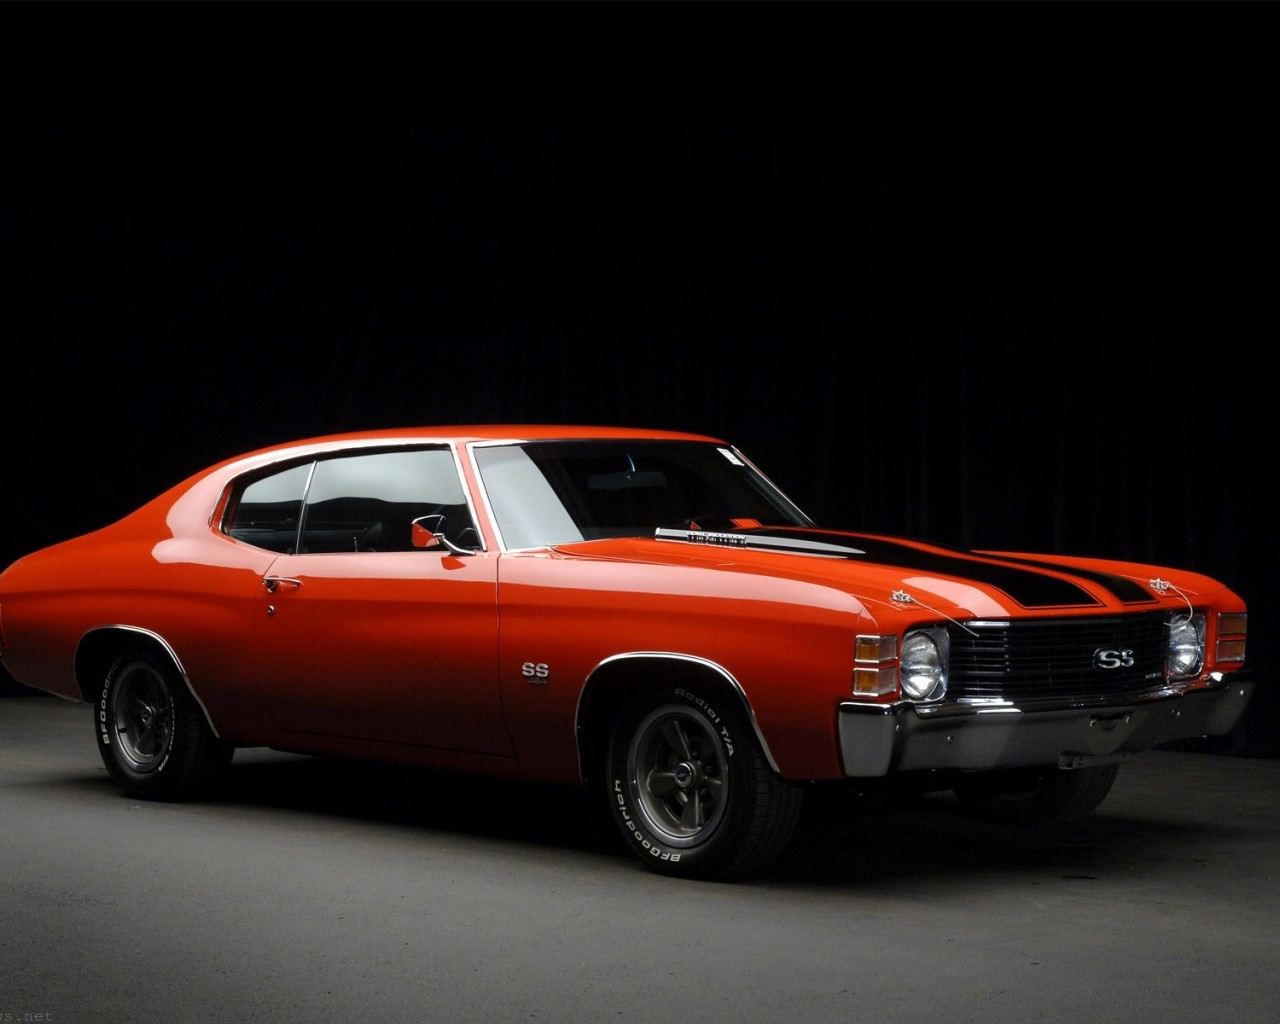 Chevy Muscle Car Wallpaper 4220 Hd Wallpapers in Cars   Imagescicom 1280x1024